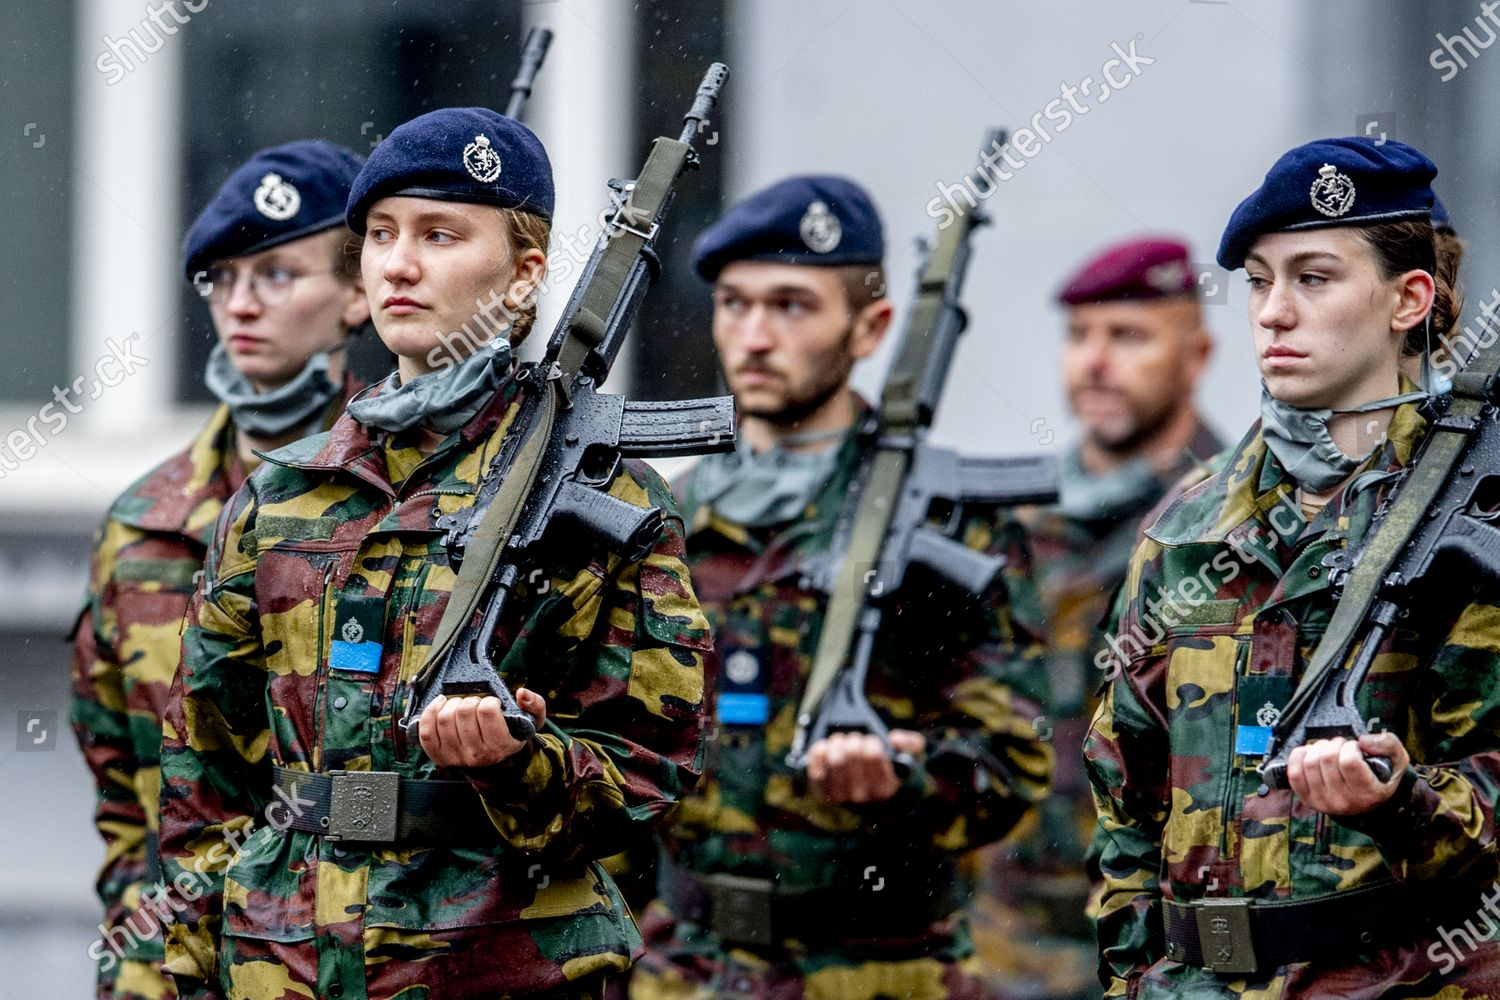 belgian-royals-attend-ceremony-for-the-presentation-of-the-blue-berets-royal-military-academy-erm-brussels-belgium-shutterstock-editorial-10790505y.jpg